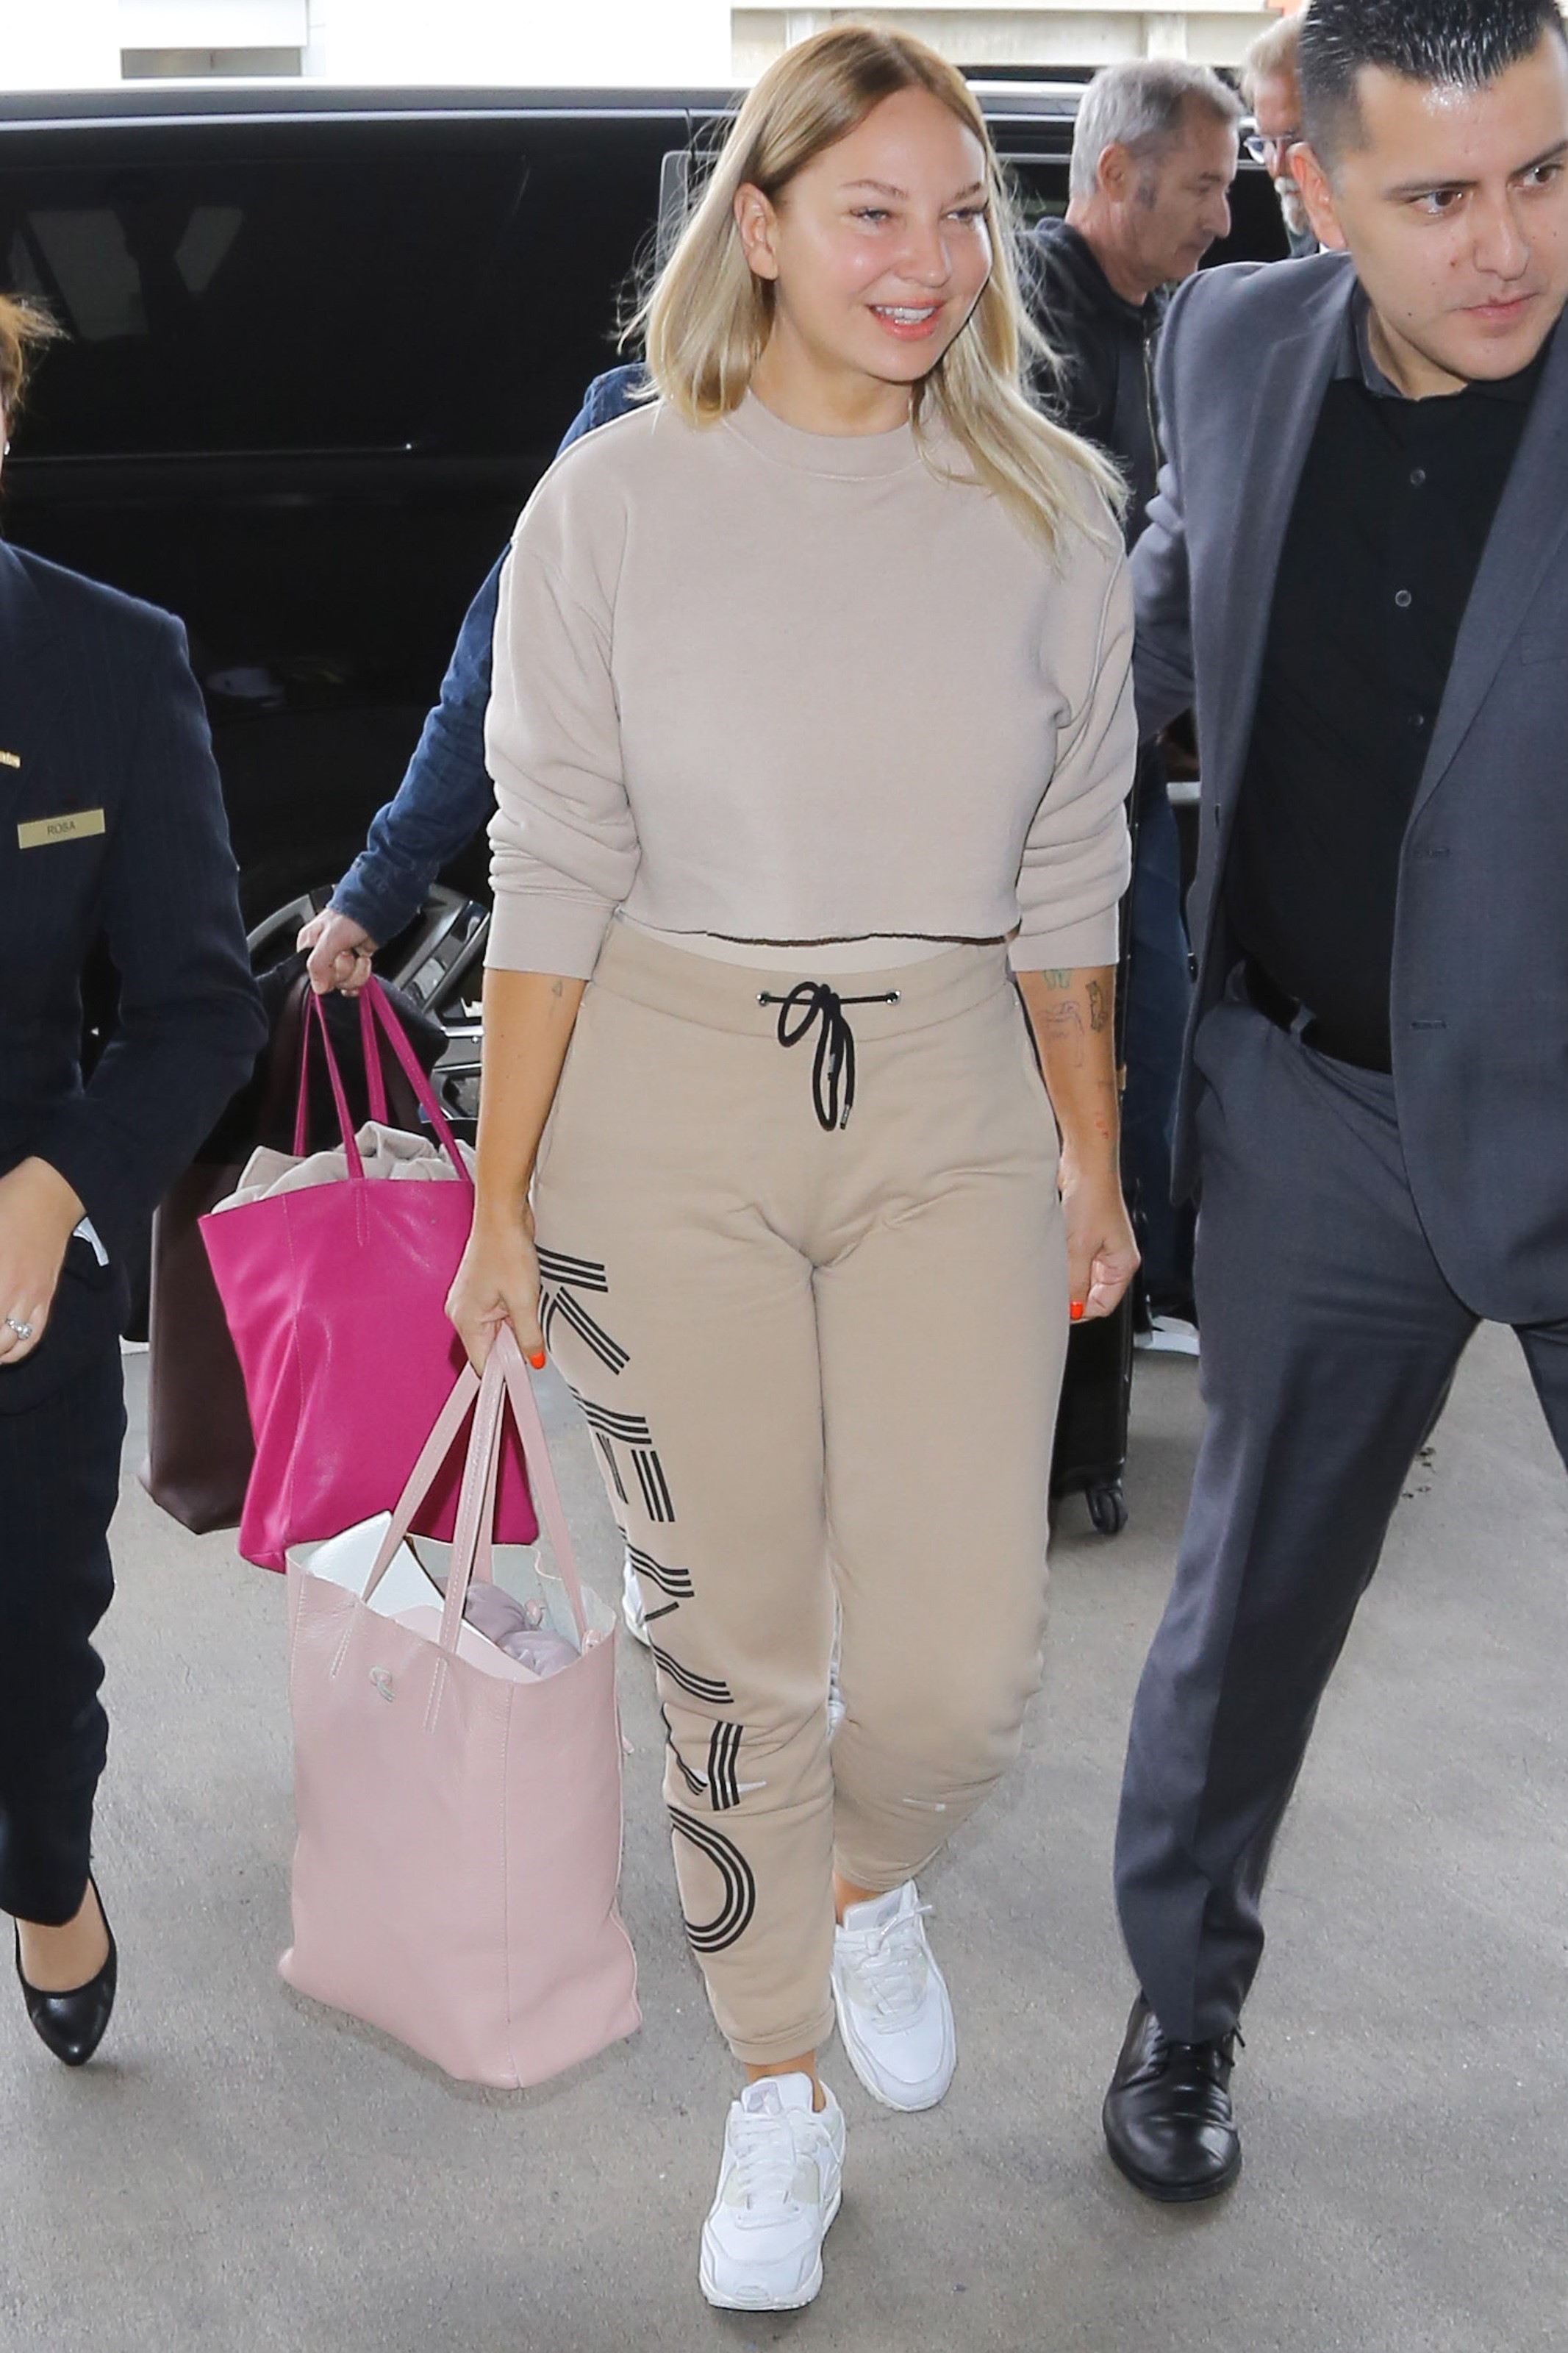 AG_182642 -  - Los Angeles, CA - Sia is spotted unmasked as she dashes to a flight out of LA. The usually reserved singer looks fresh and makeup free as she sports a nude colored Kenzo outfit while walking through the terminal.  Pictured: Sia  22 MARCH 2017  BYLINE MUST READ: Vasquez-Max Lopes     Maria Buda (917) 242-1505 mbuda@akmgsi.com   Mark Satter (317) 691-9592 msatter@akmgsi.com or sales@akmgsi.com, Image: 326192674, License: Rights-managed, Restrictions: , Model Release: no, Credit line: Profimedia, AKM-GSI